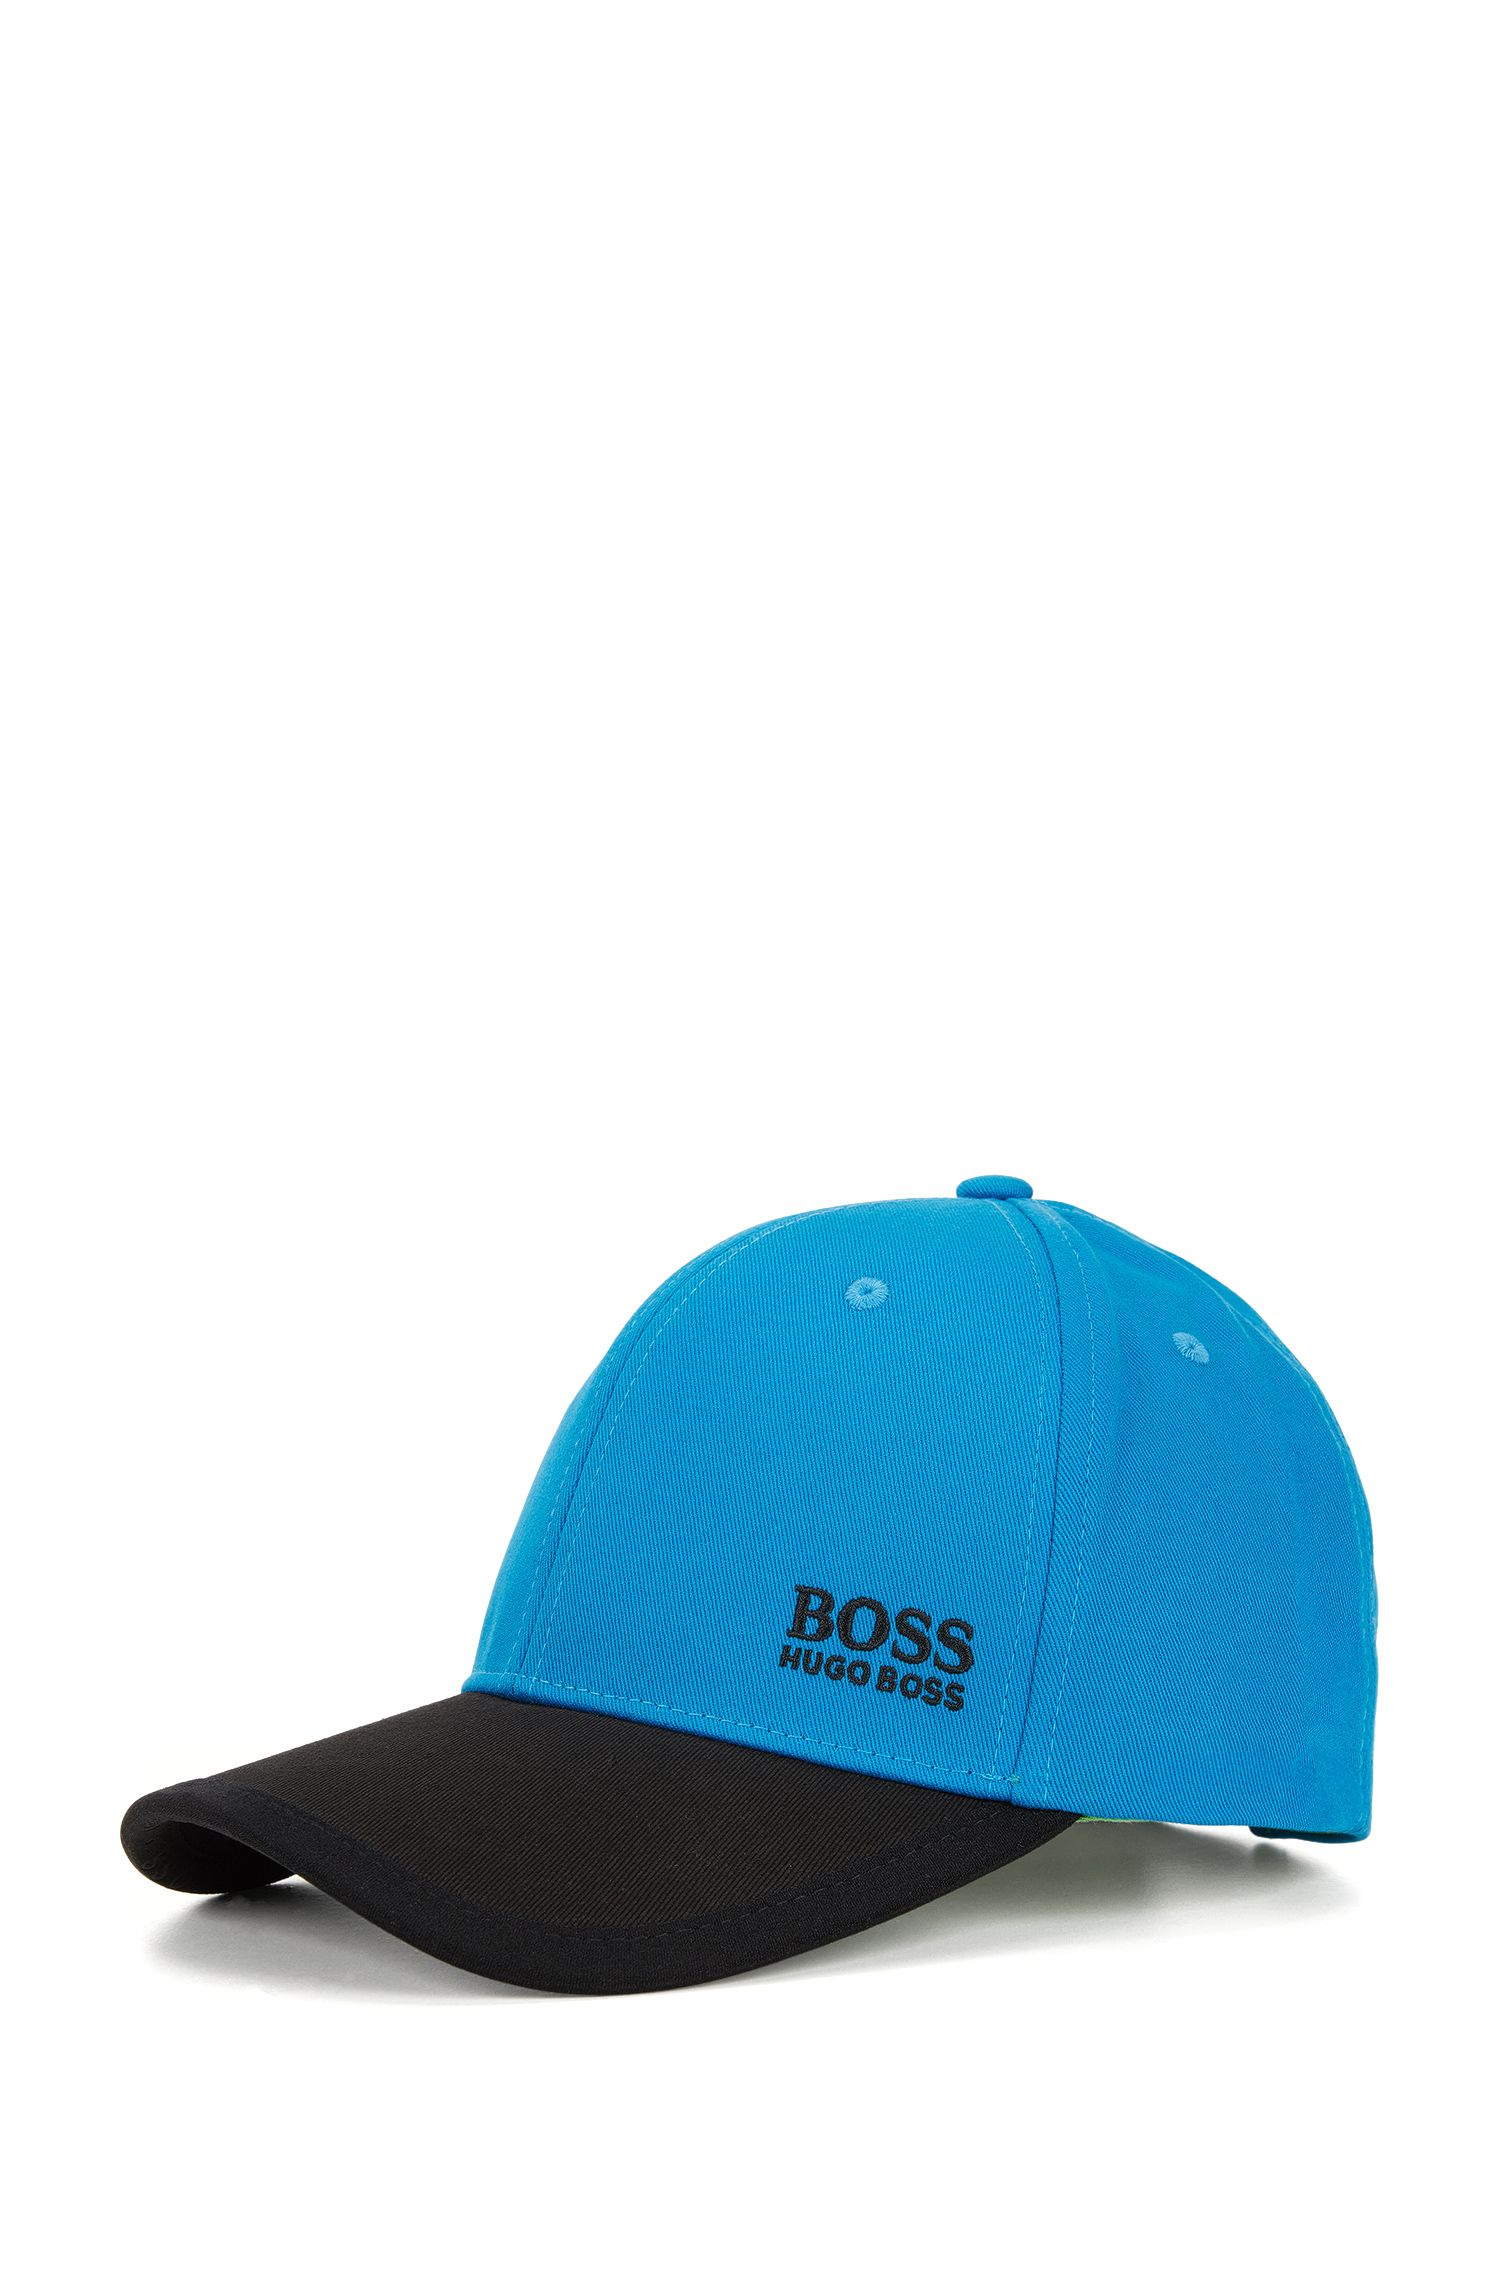 Casquette de base-ball color block en sergé de coton